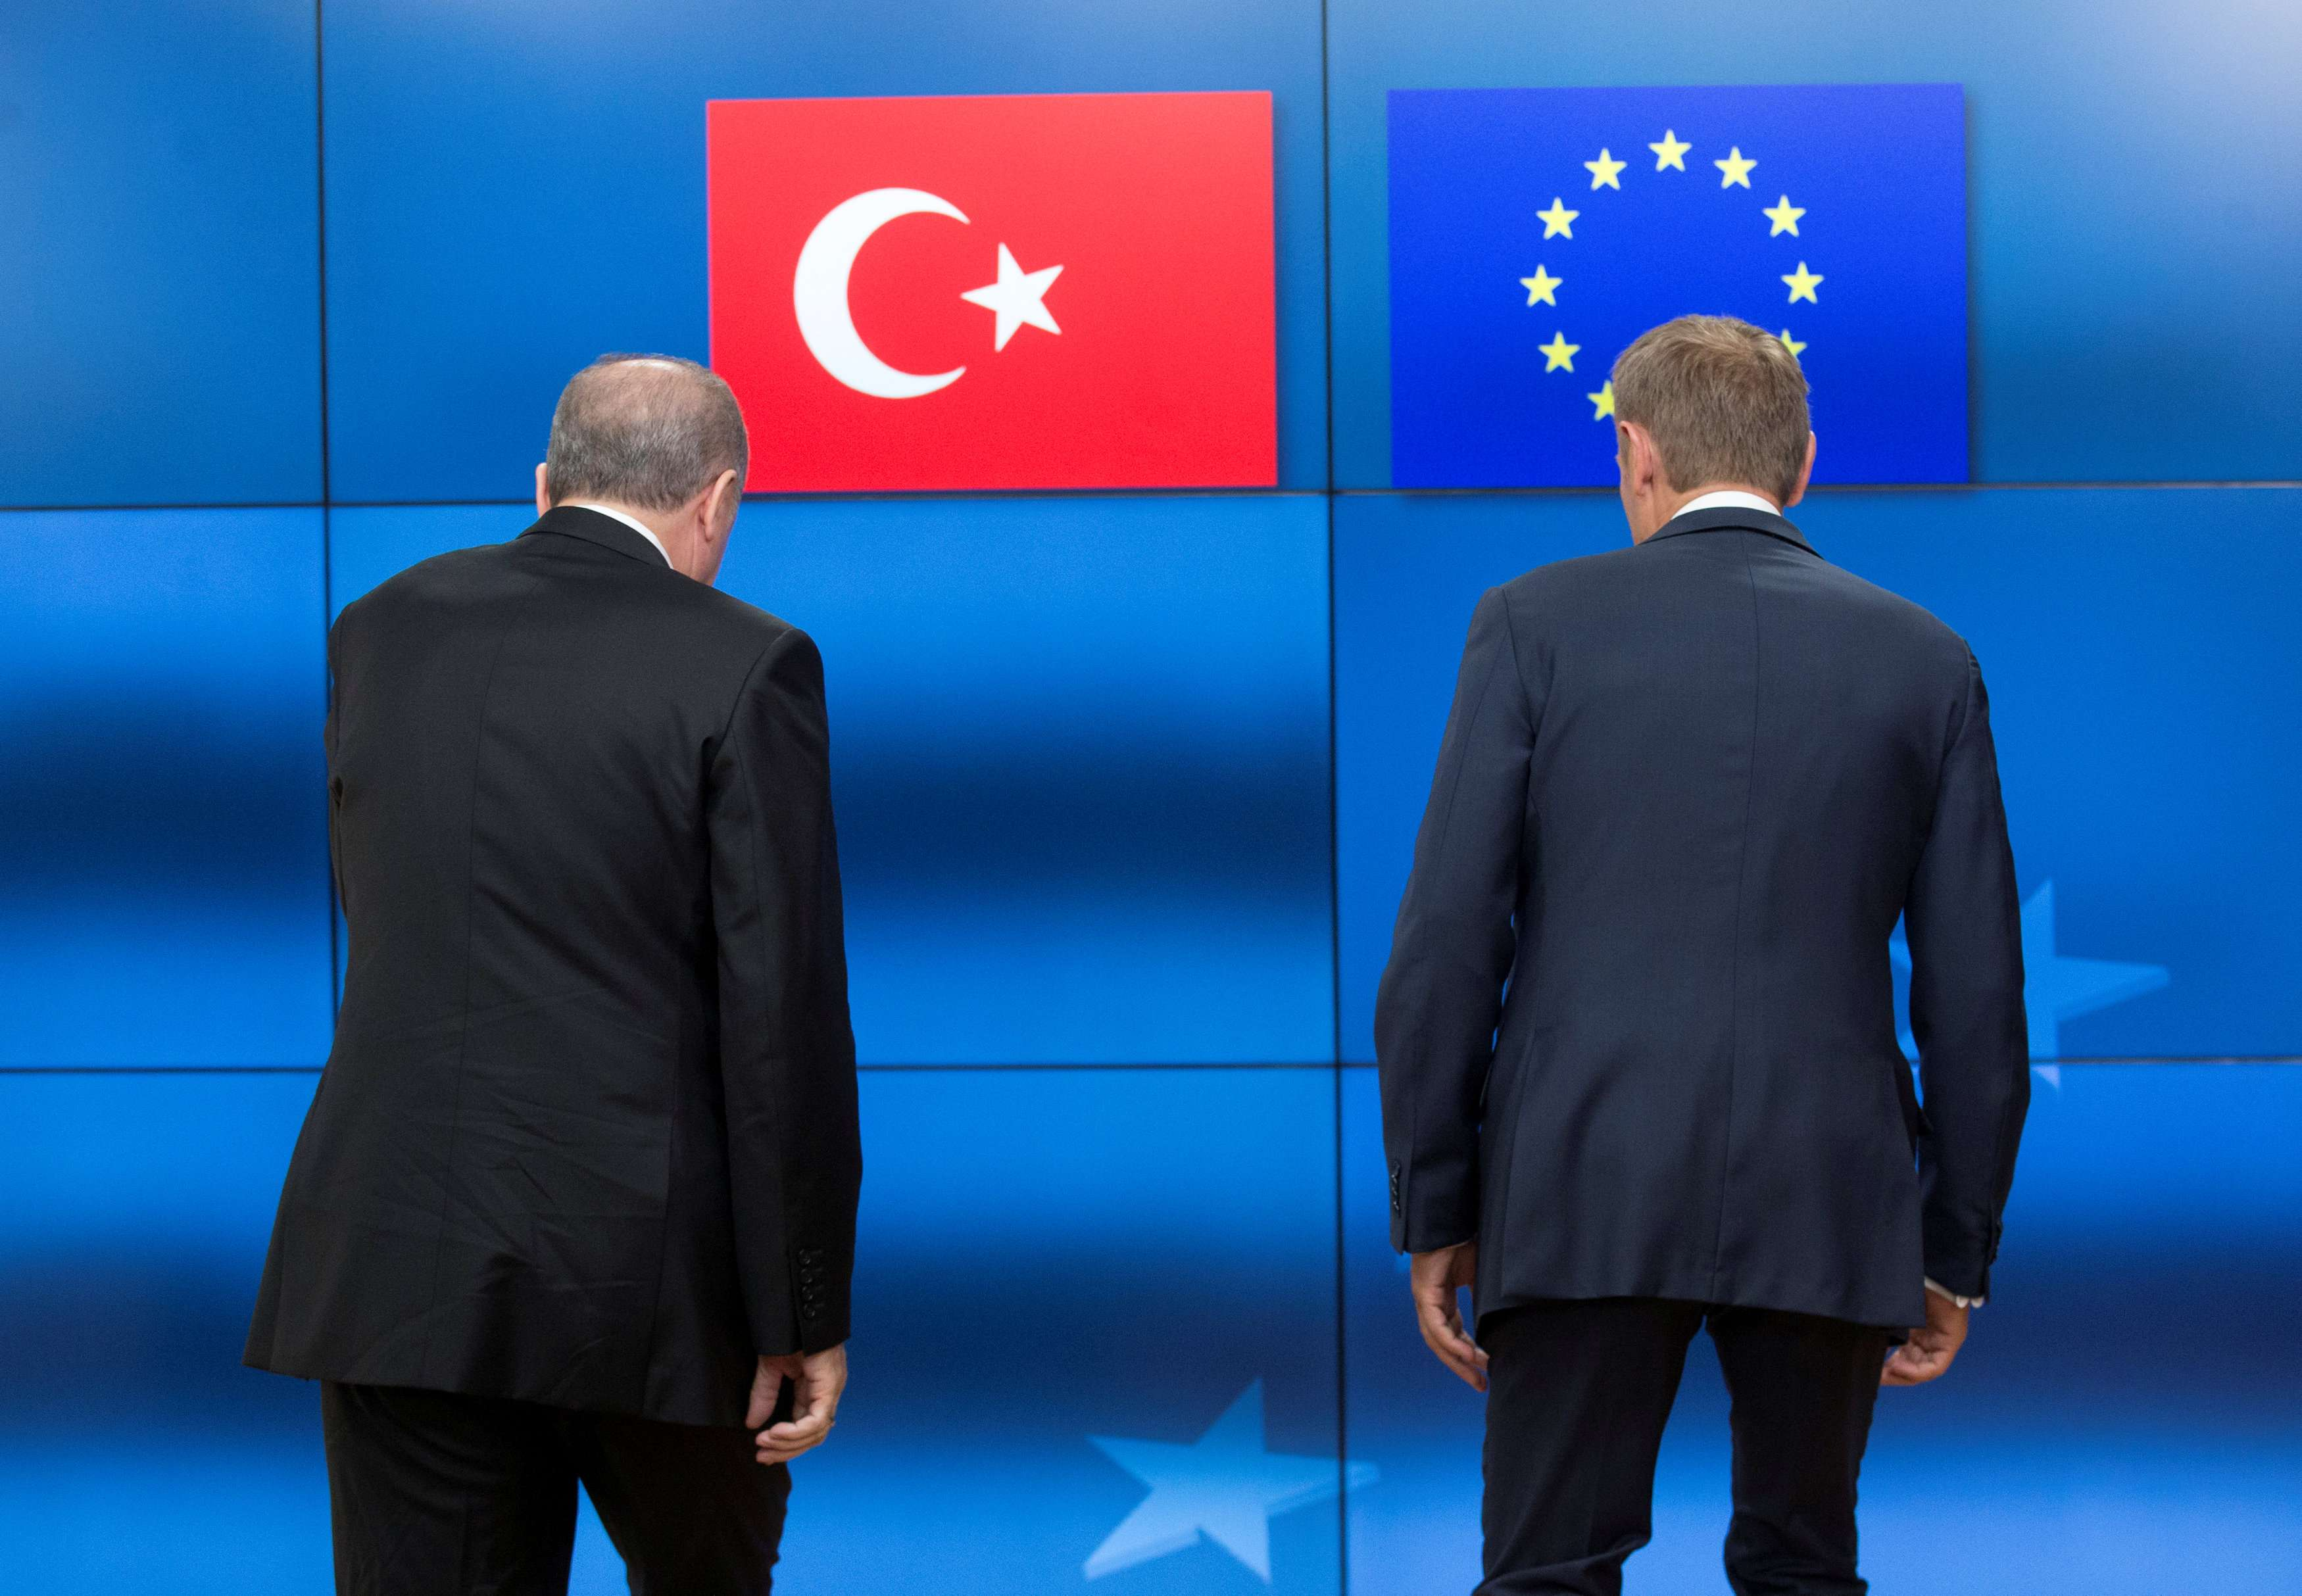 A 2017 file picture shows Turkish President Recep Tayyip Erdogan (L) and European Council President Donald Tusk before a meeting at the European Council in Brussels. (Reuters)